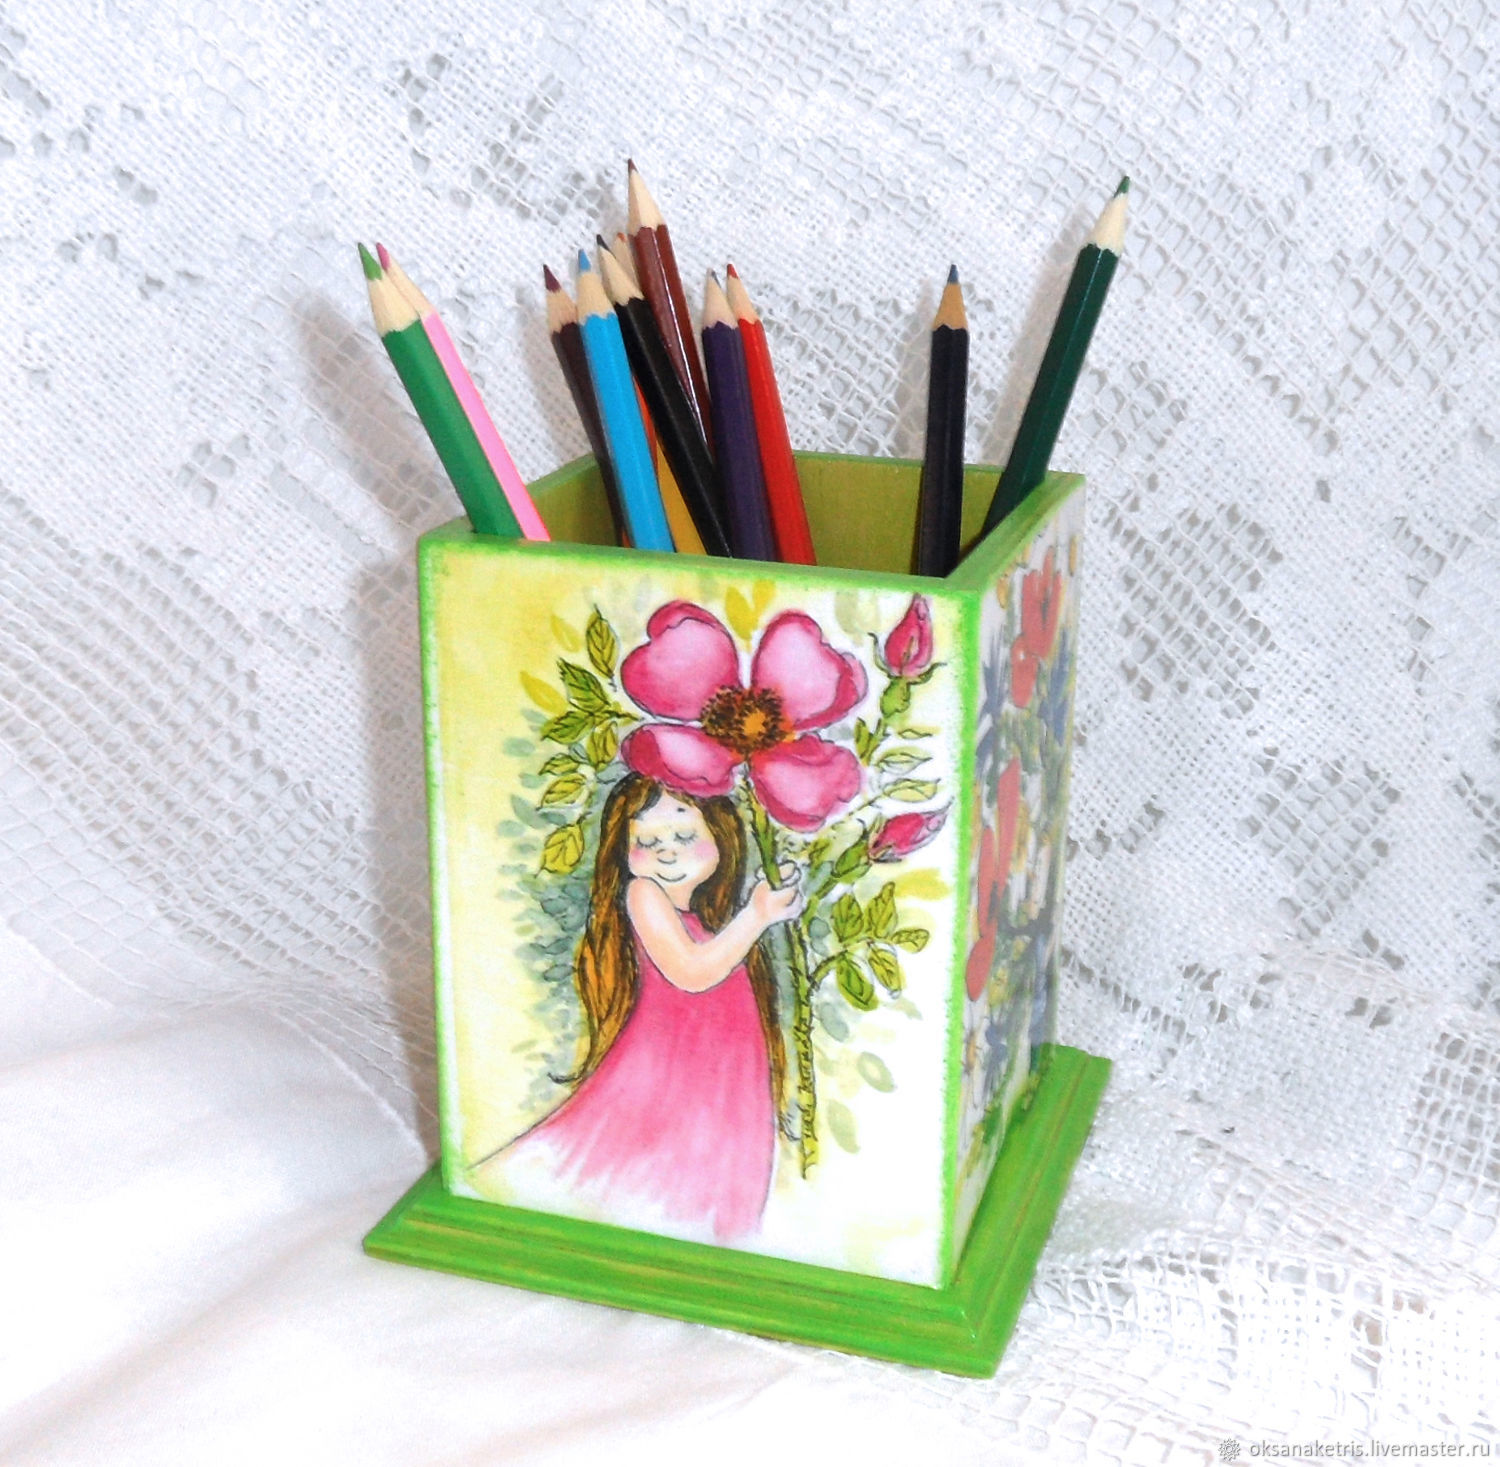 Pencil Holders handmade Livemaster handmade Buy